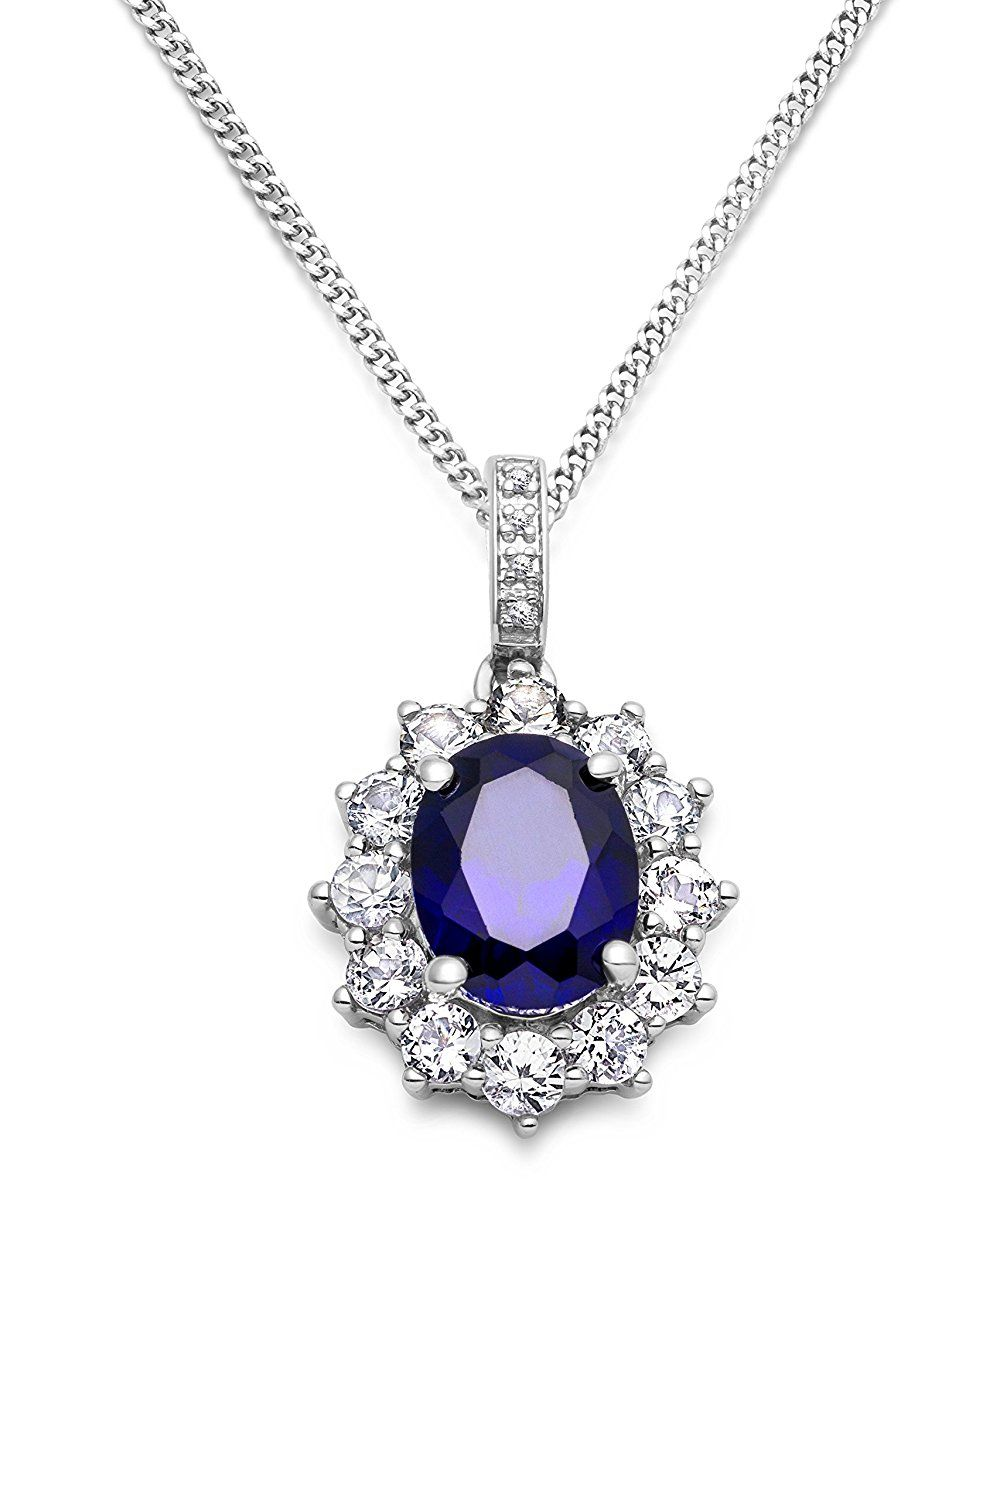 Miore women's 925 Sterling Silver Amethyst Zirconia Heart Pendant on 45cm Chain